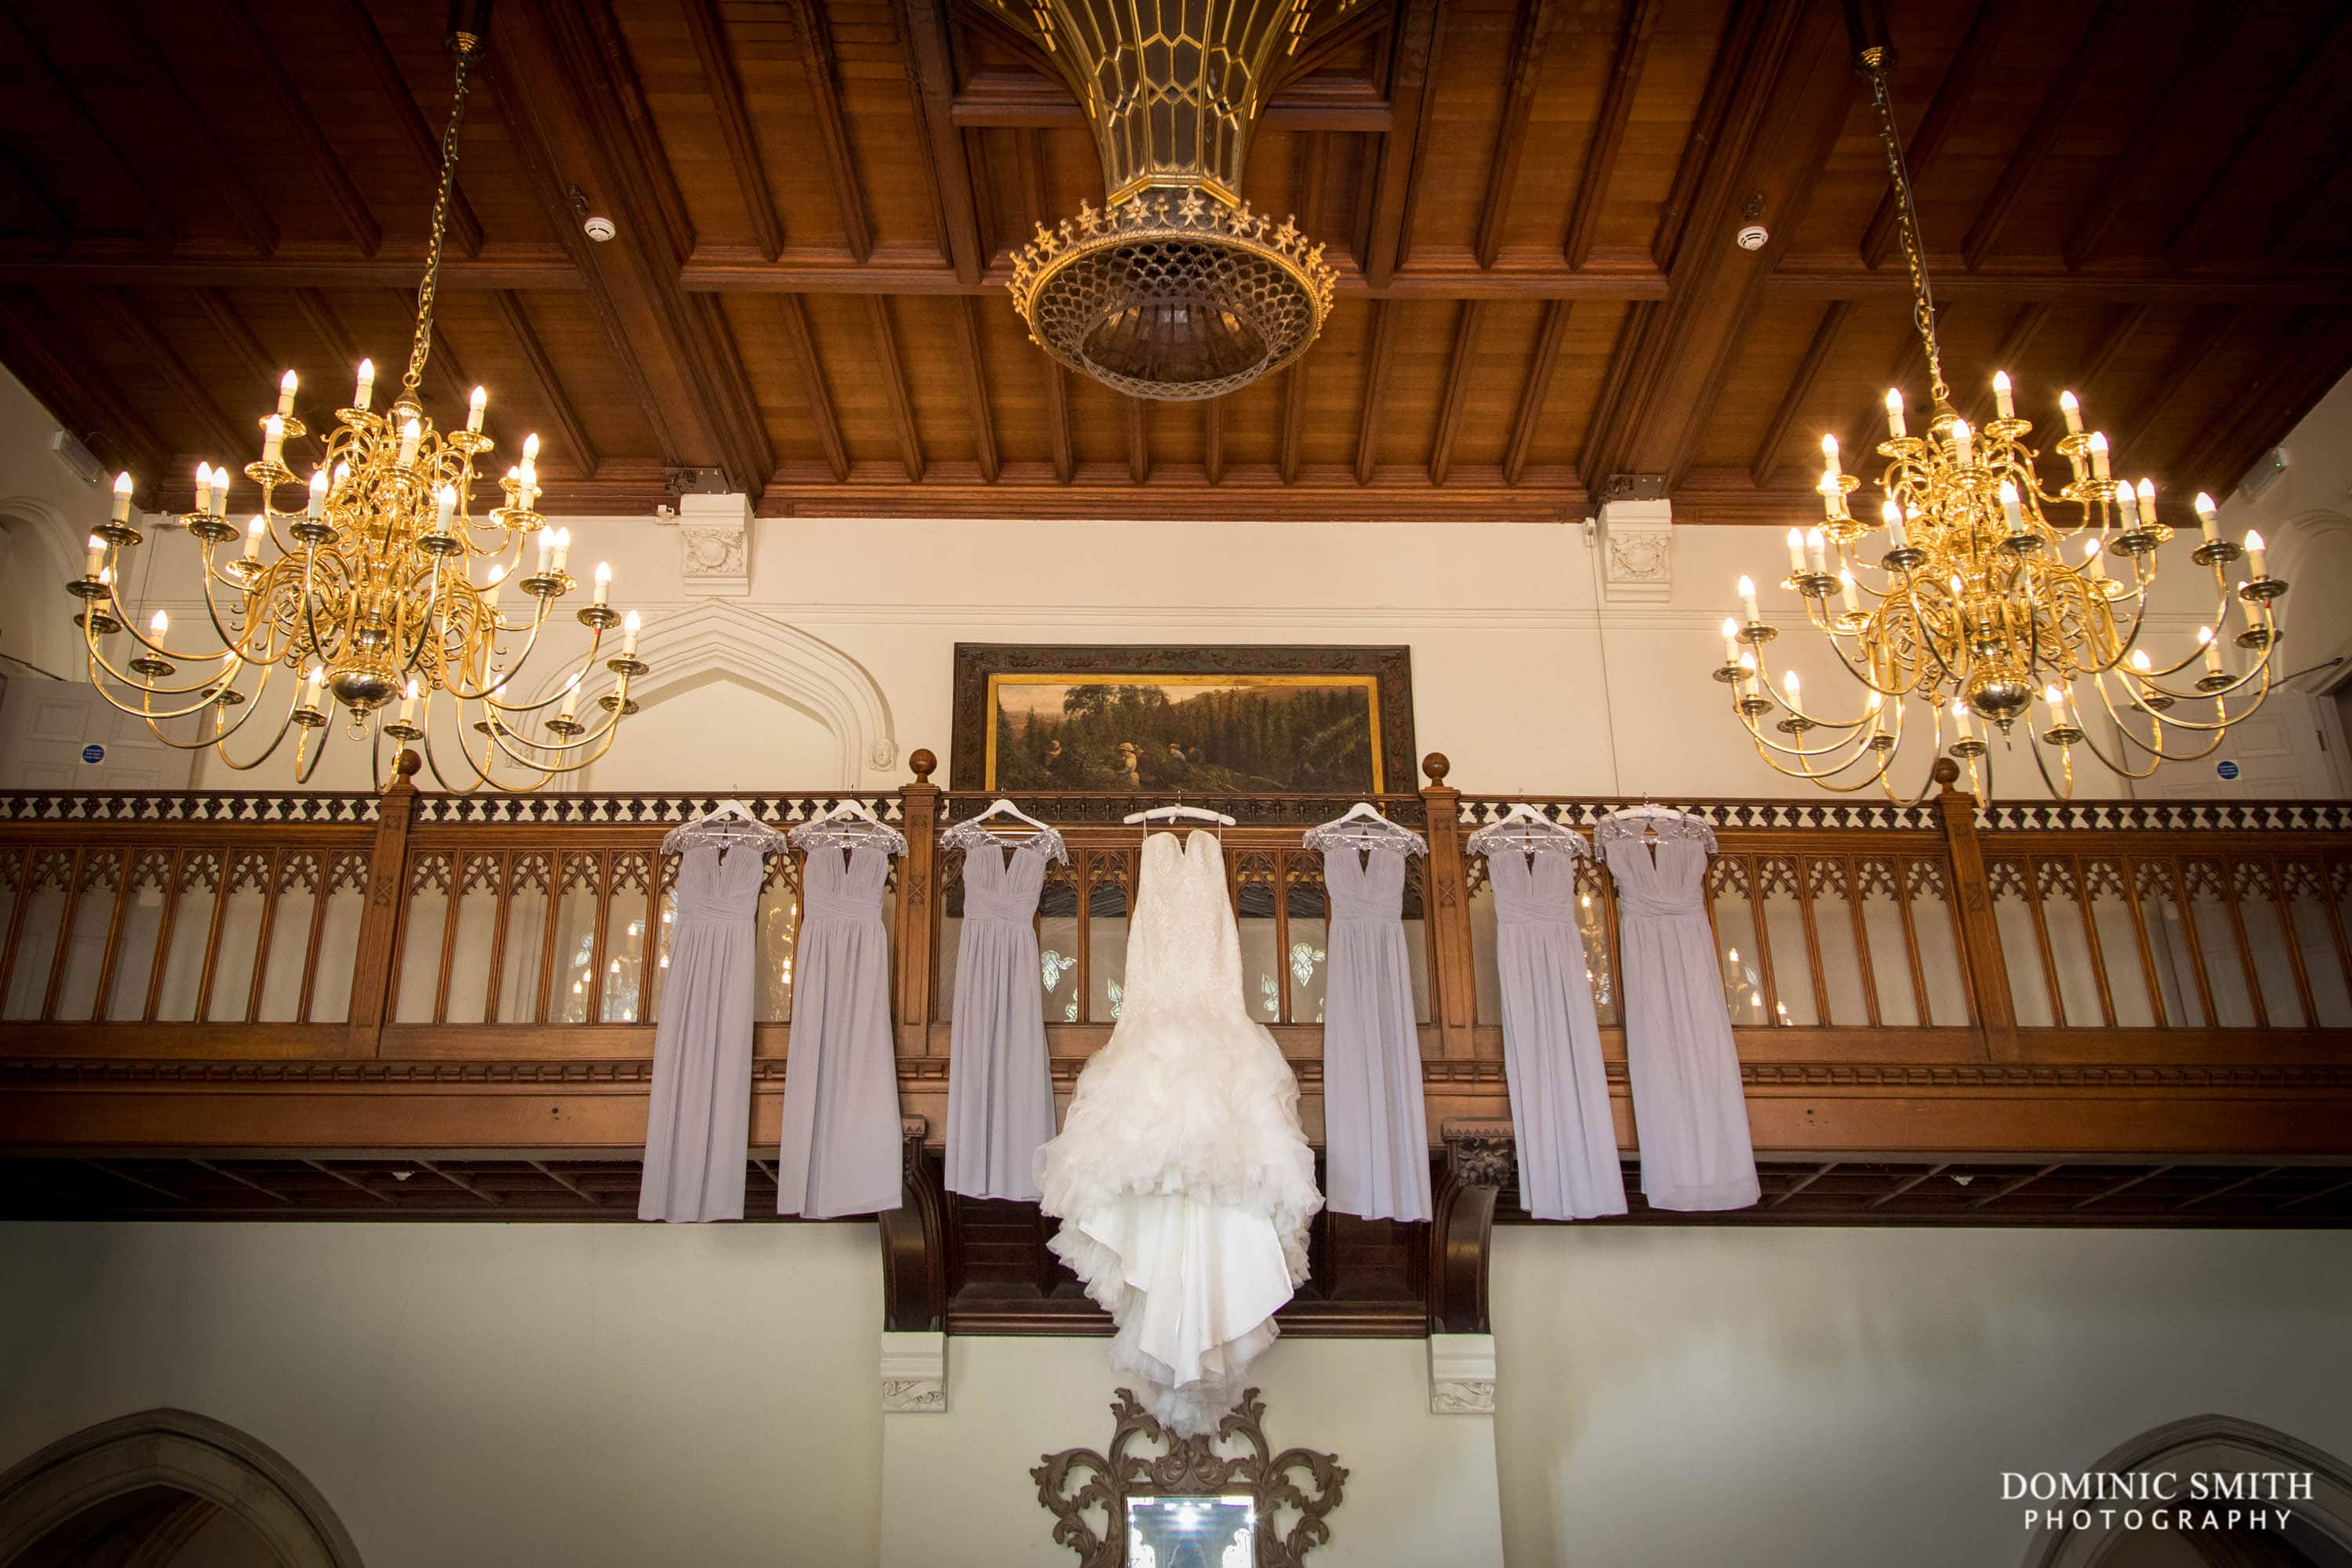 Wedding dress hanging up at Nutfield Priory